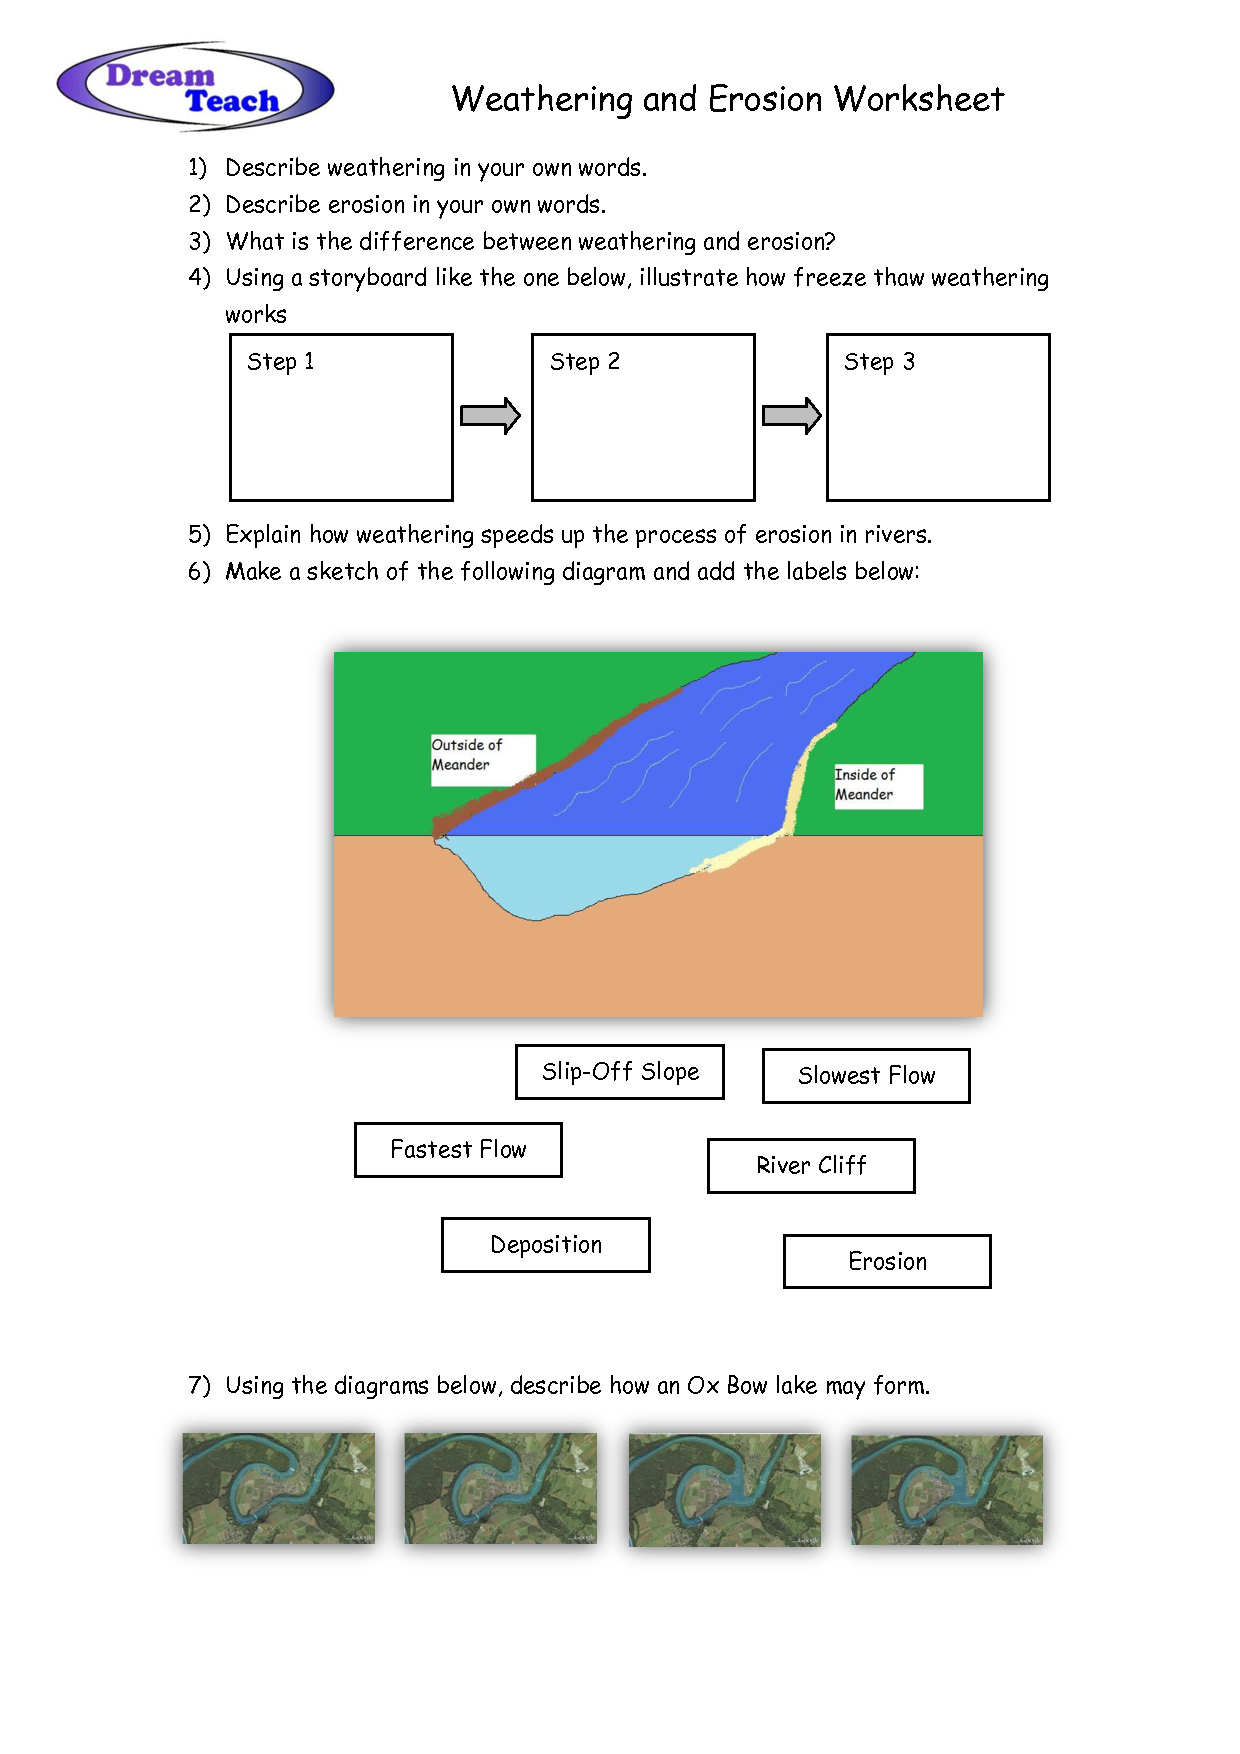 Worksheet Free Printable For Kids: Quick Worksheet On Weathering And Erosion weathering and erosion worksheet school pinterest worksheet